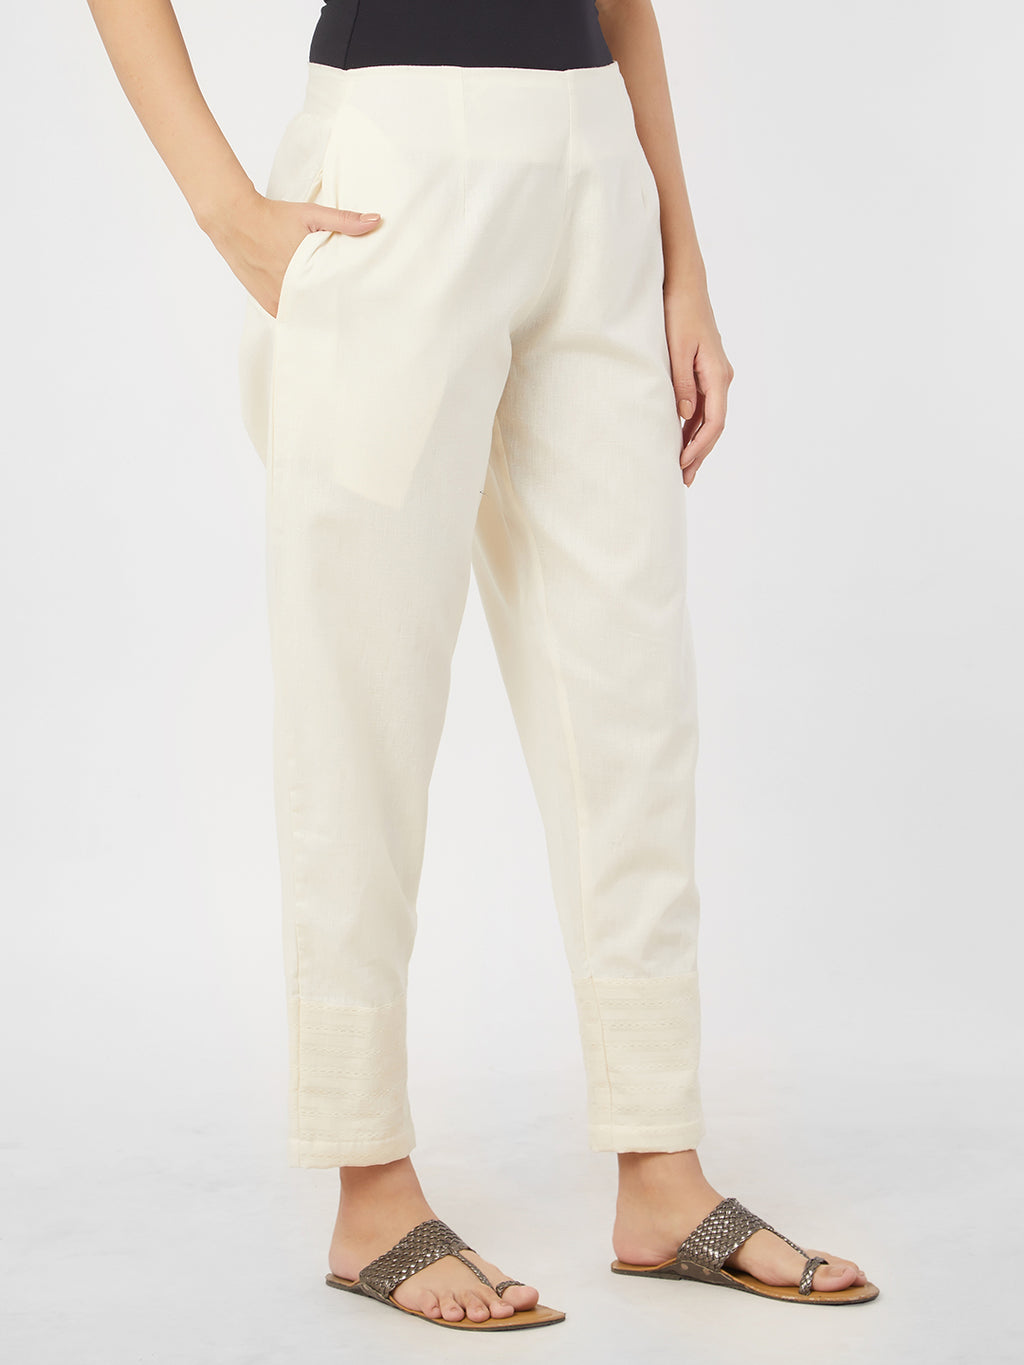 Narrow Cream Pants With Statement Hem